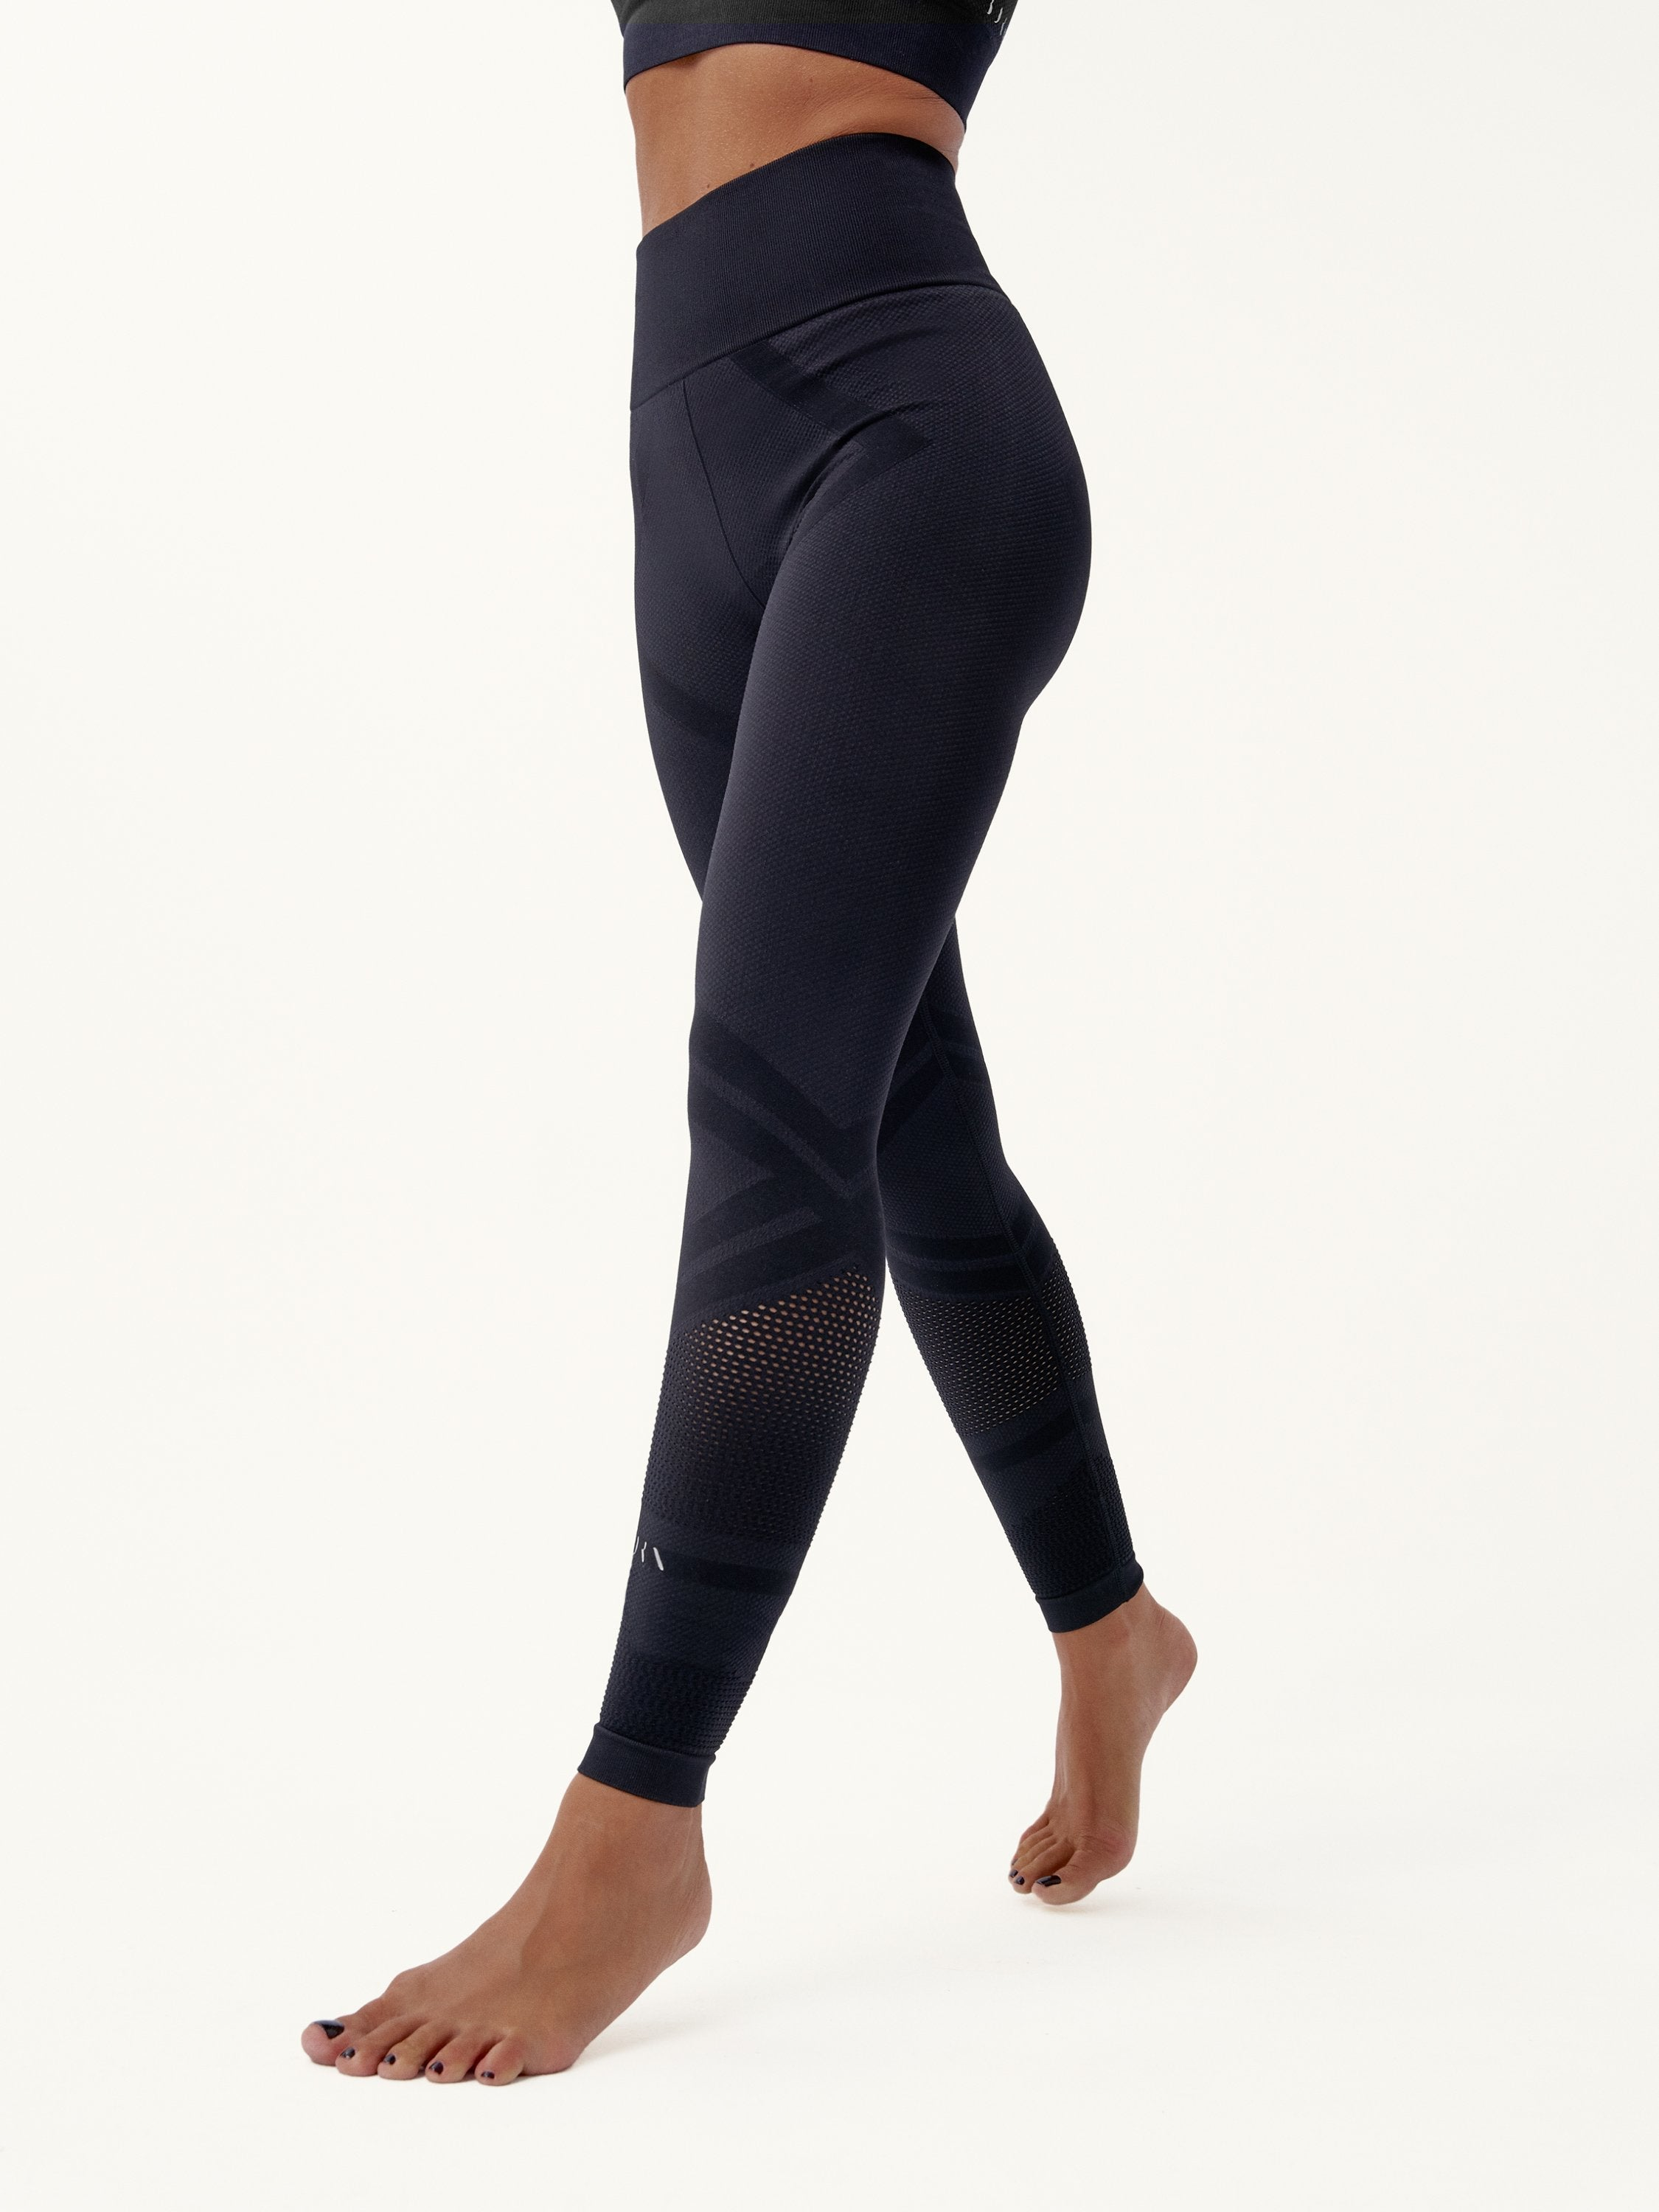 Legging Maya Black